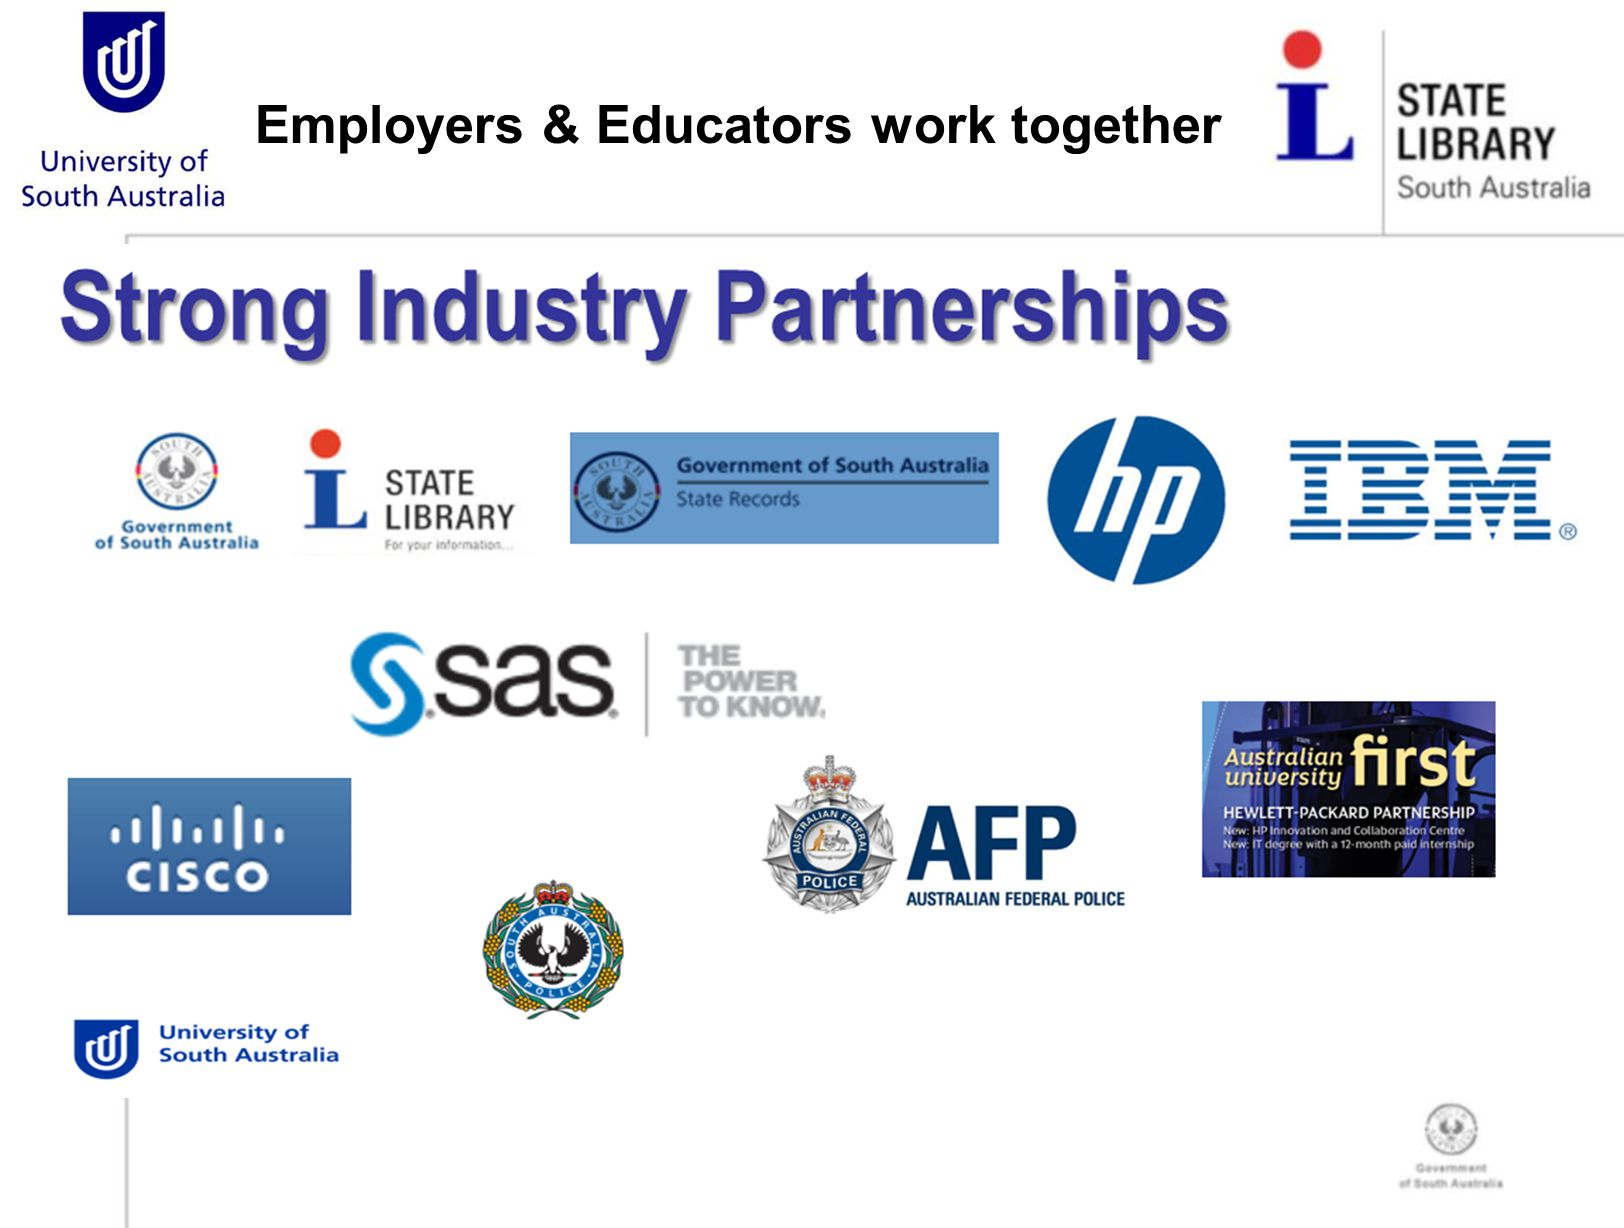 Employers & Educators work together